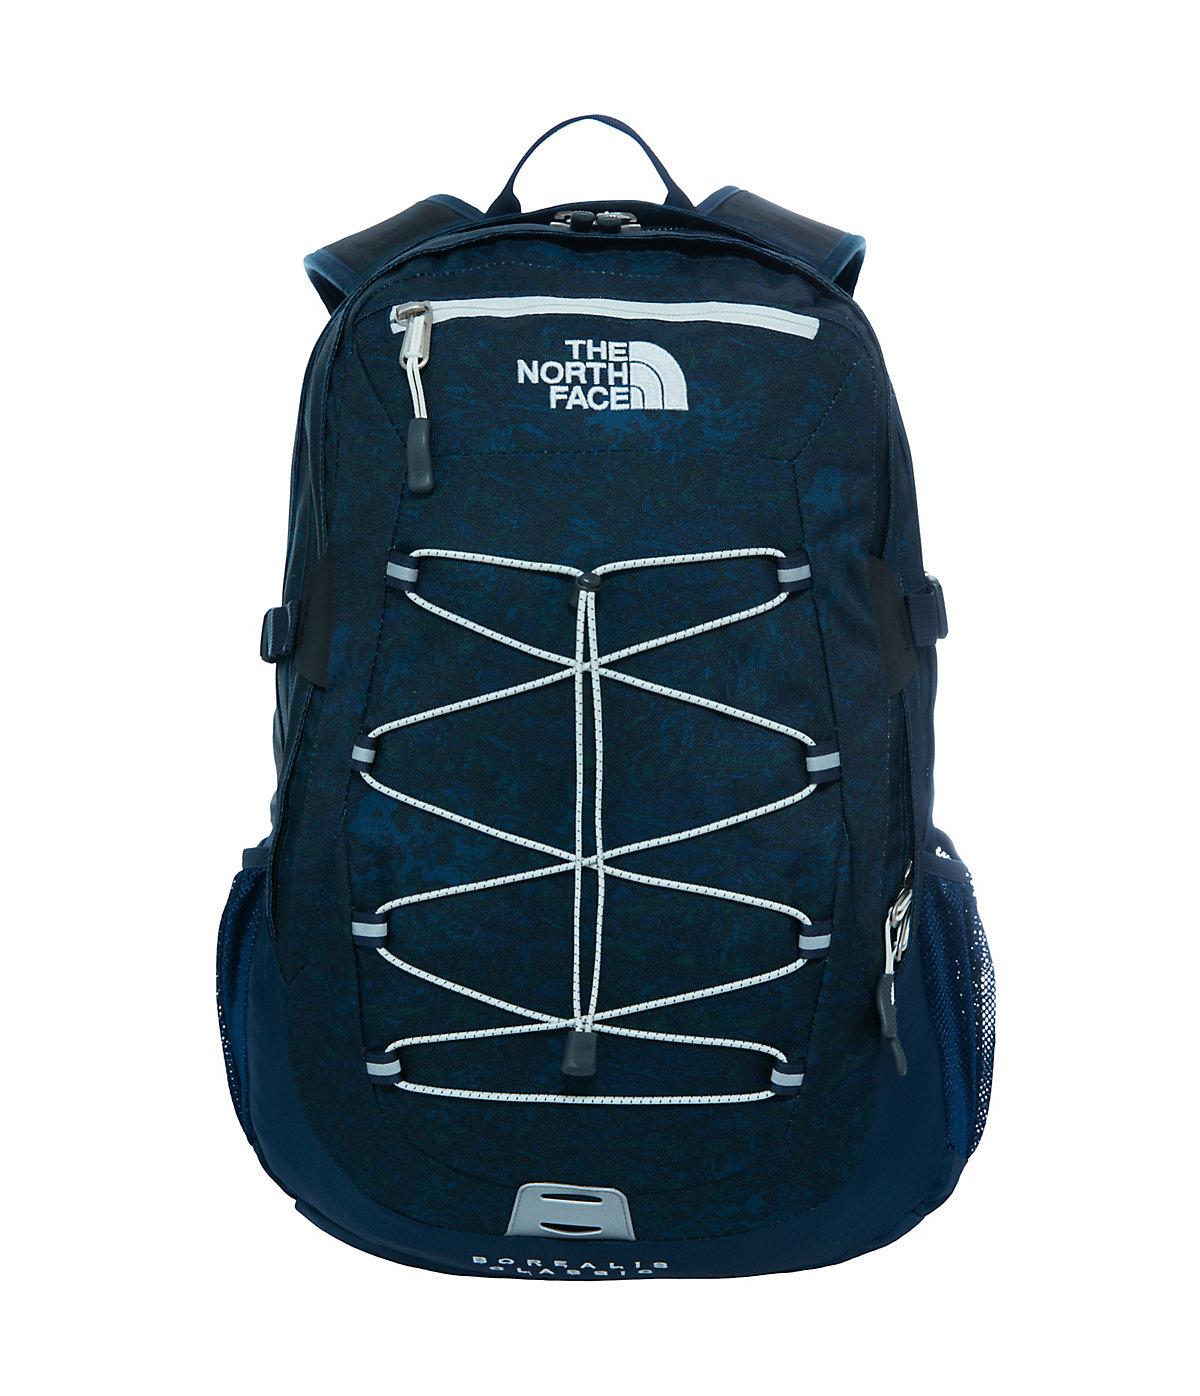 Рюкзак The North Face BOREALIS Classic 29